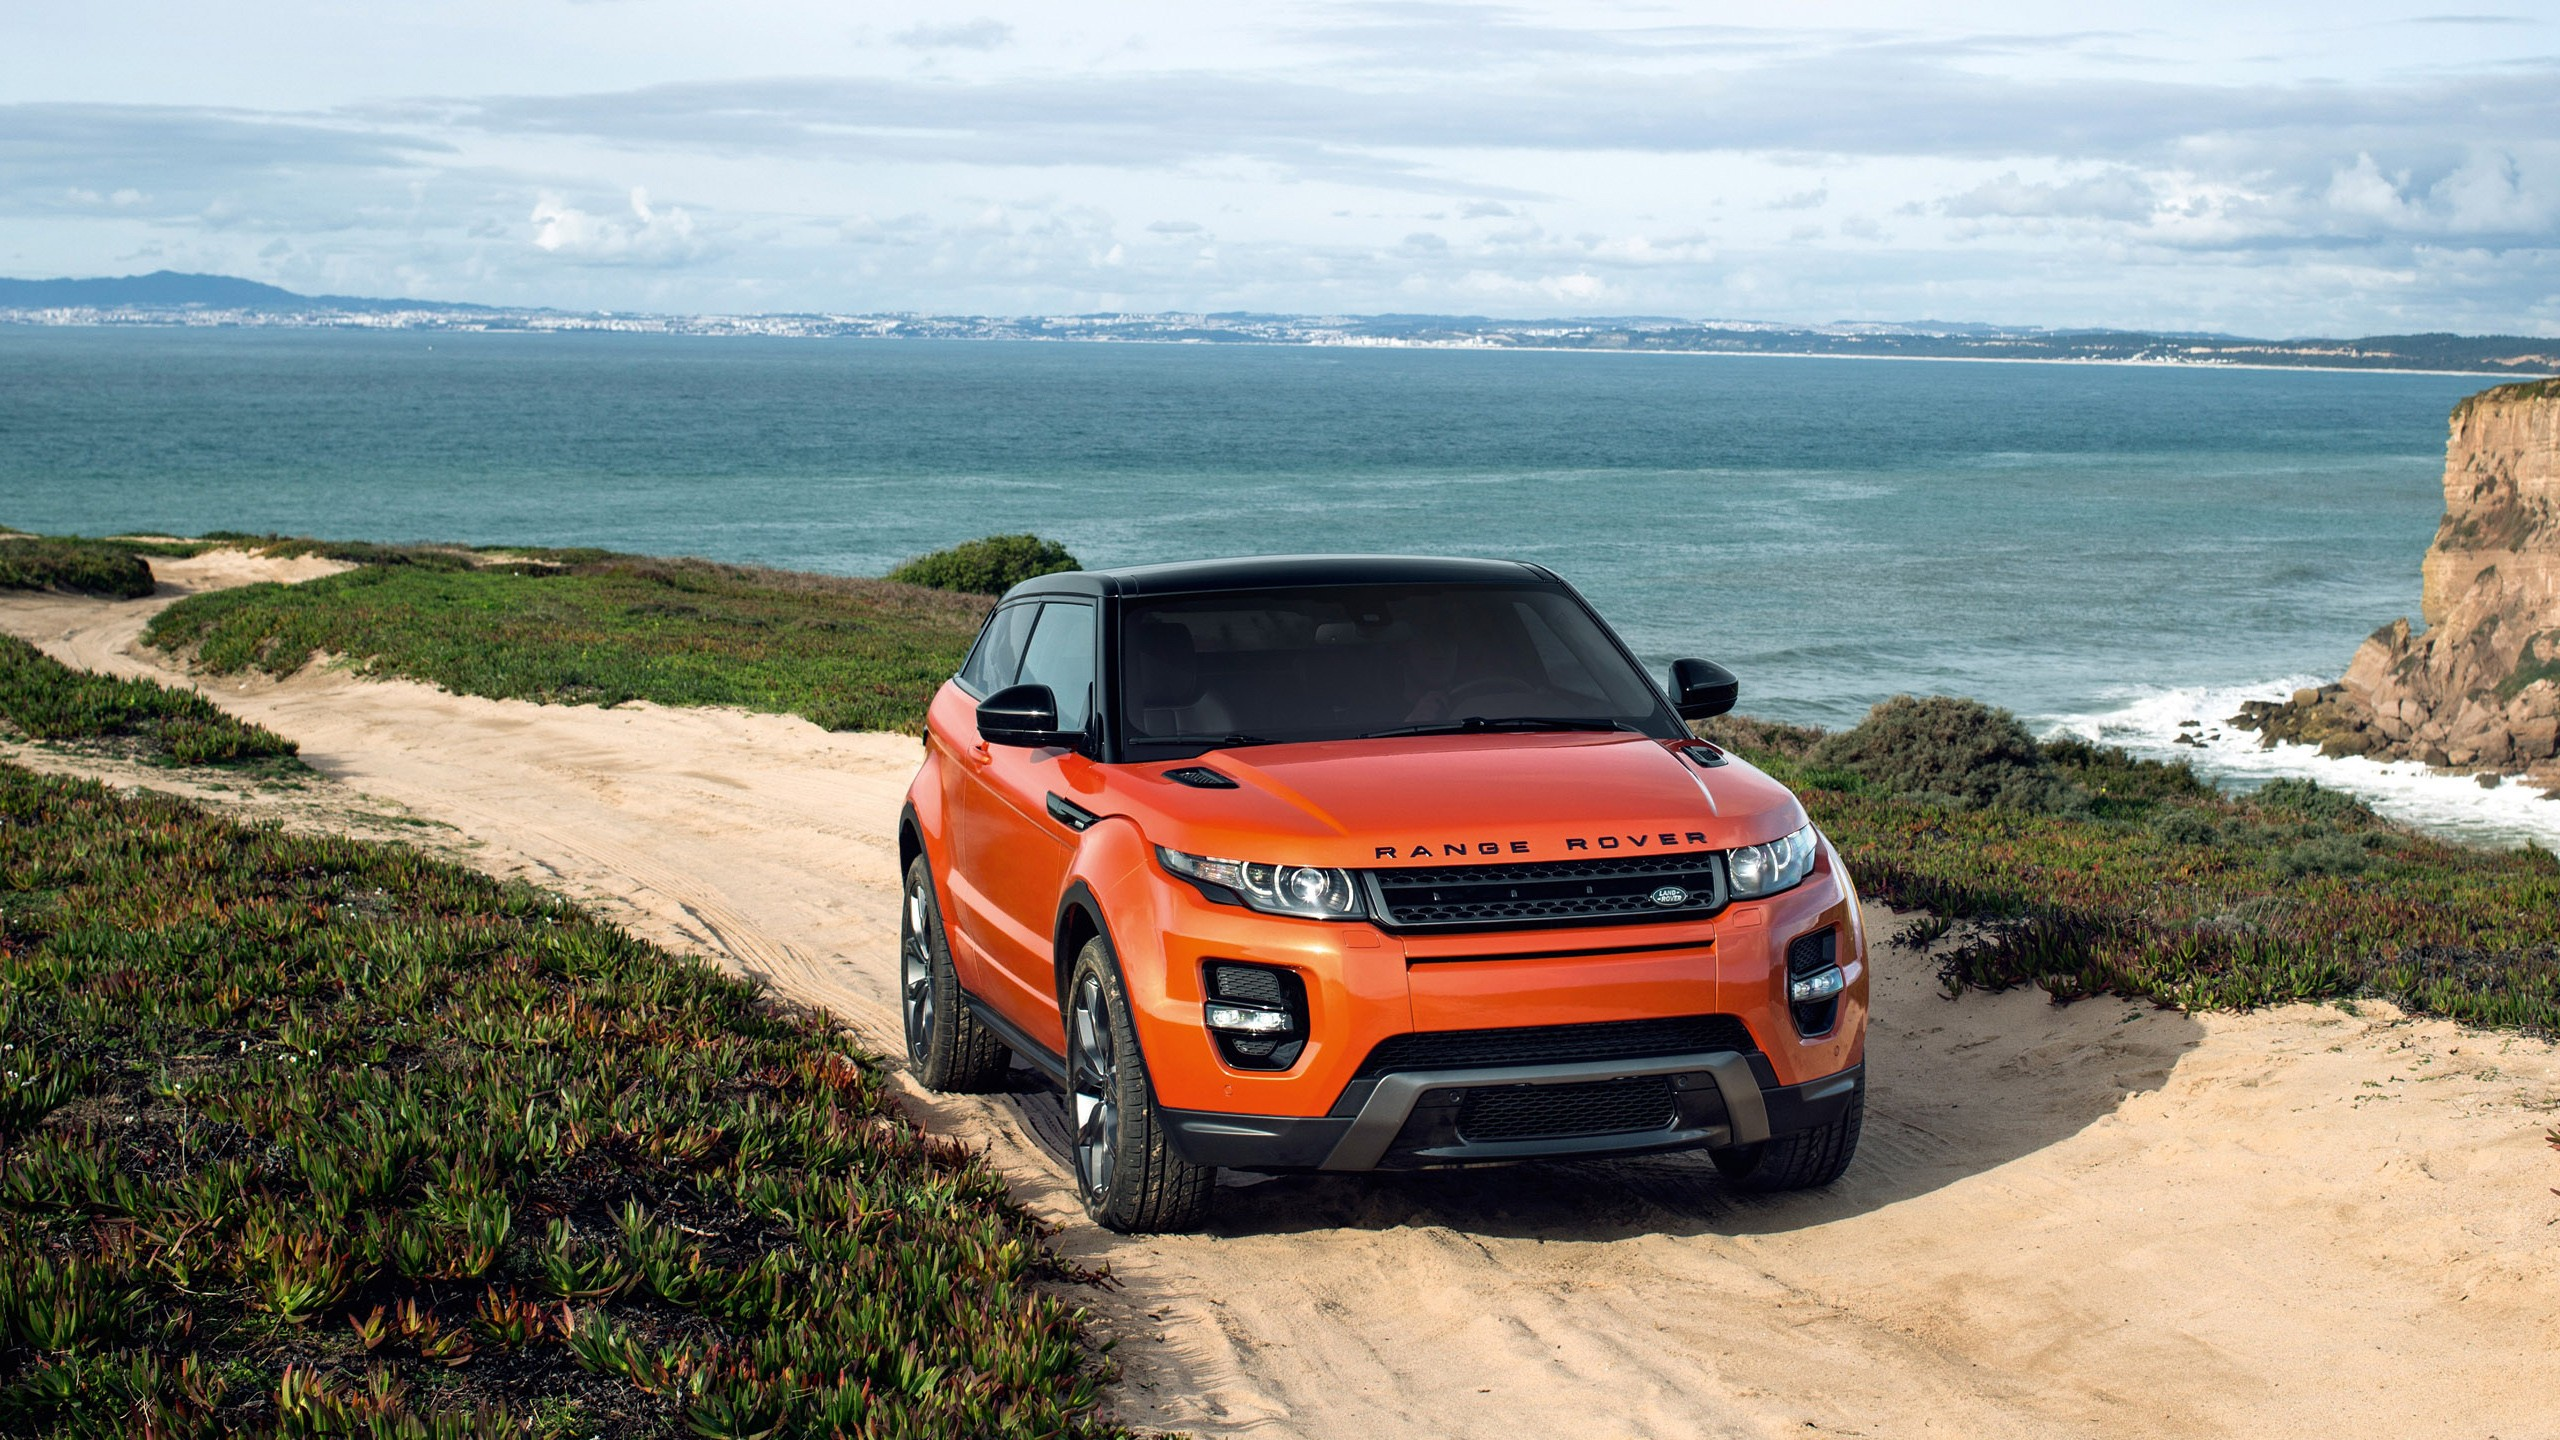 2014 Hd Wallpapers: 2014 Land Rover Range Rover Evoque Autobiography Dynamic